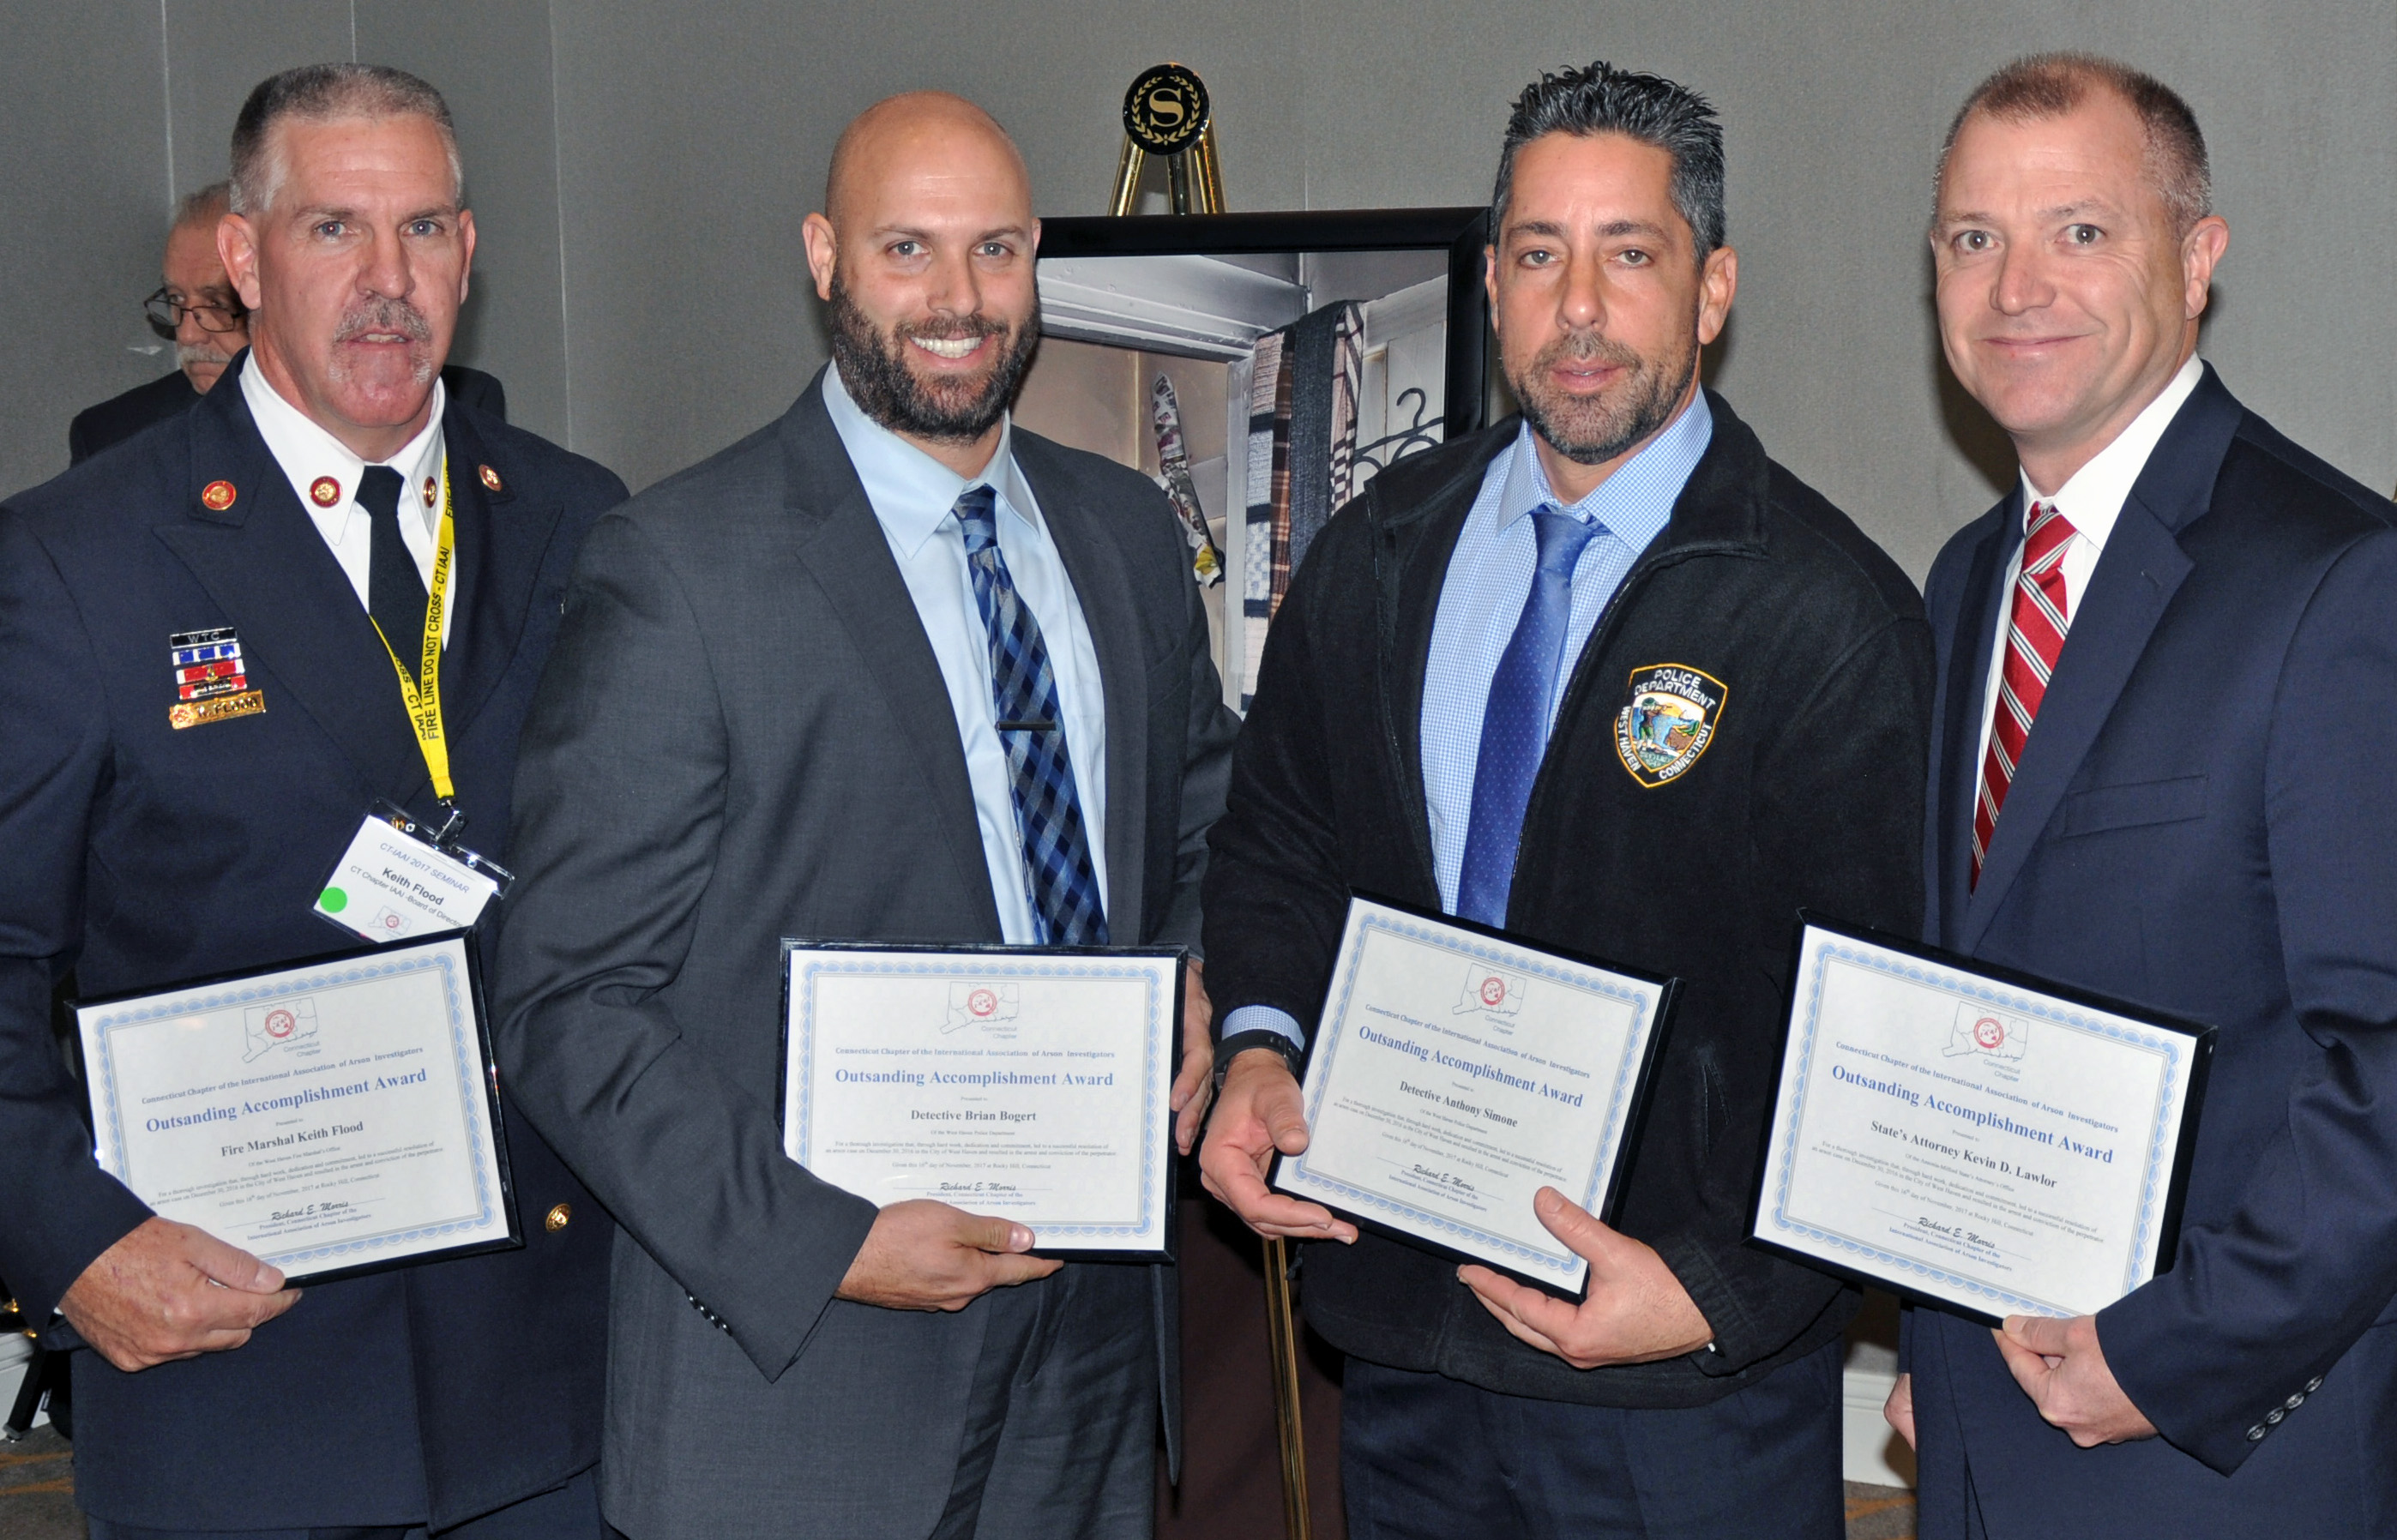 State's Attorney Kevin Lawlor (right) was honored by the International Association of Arson Investigators.